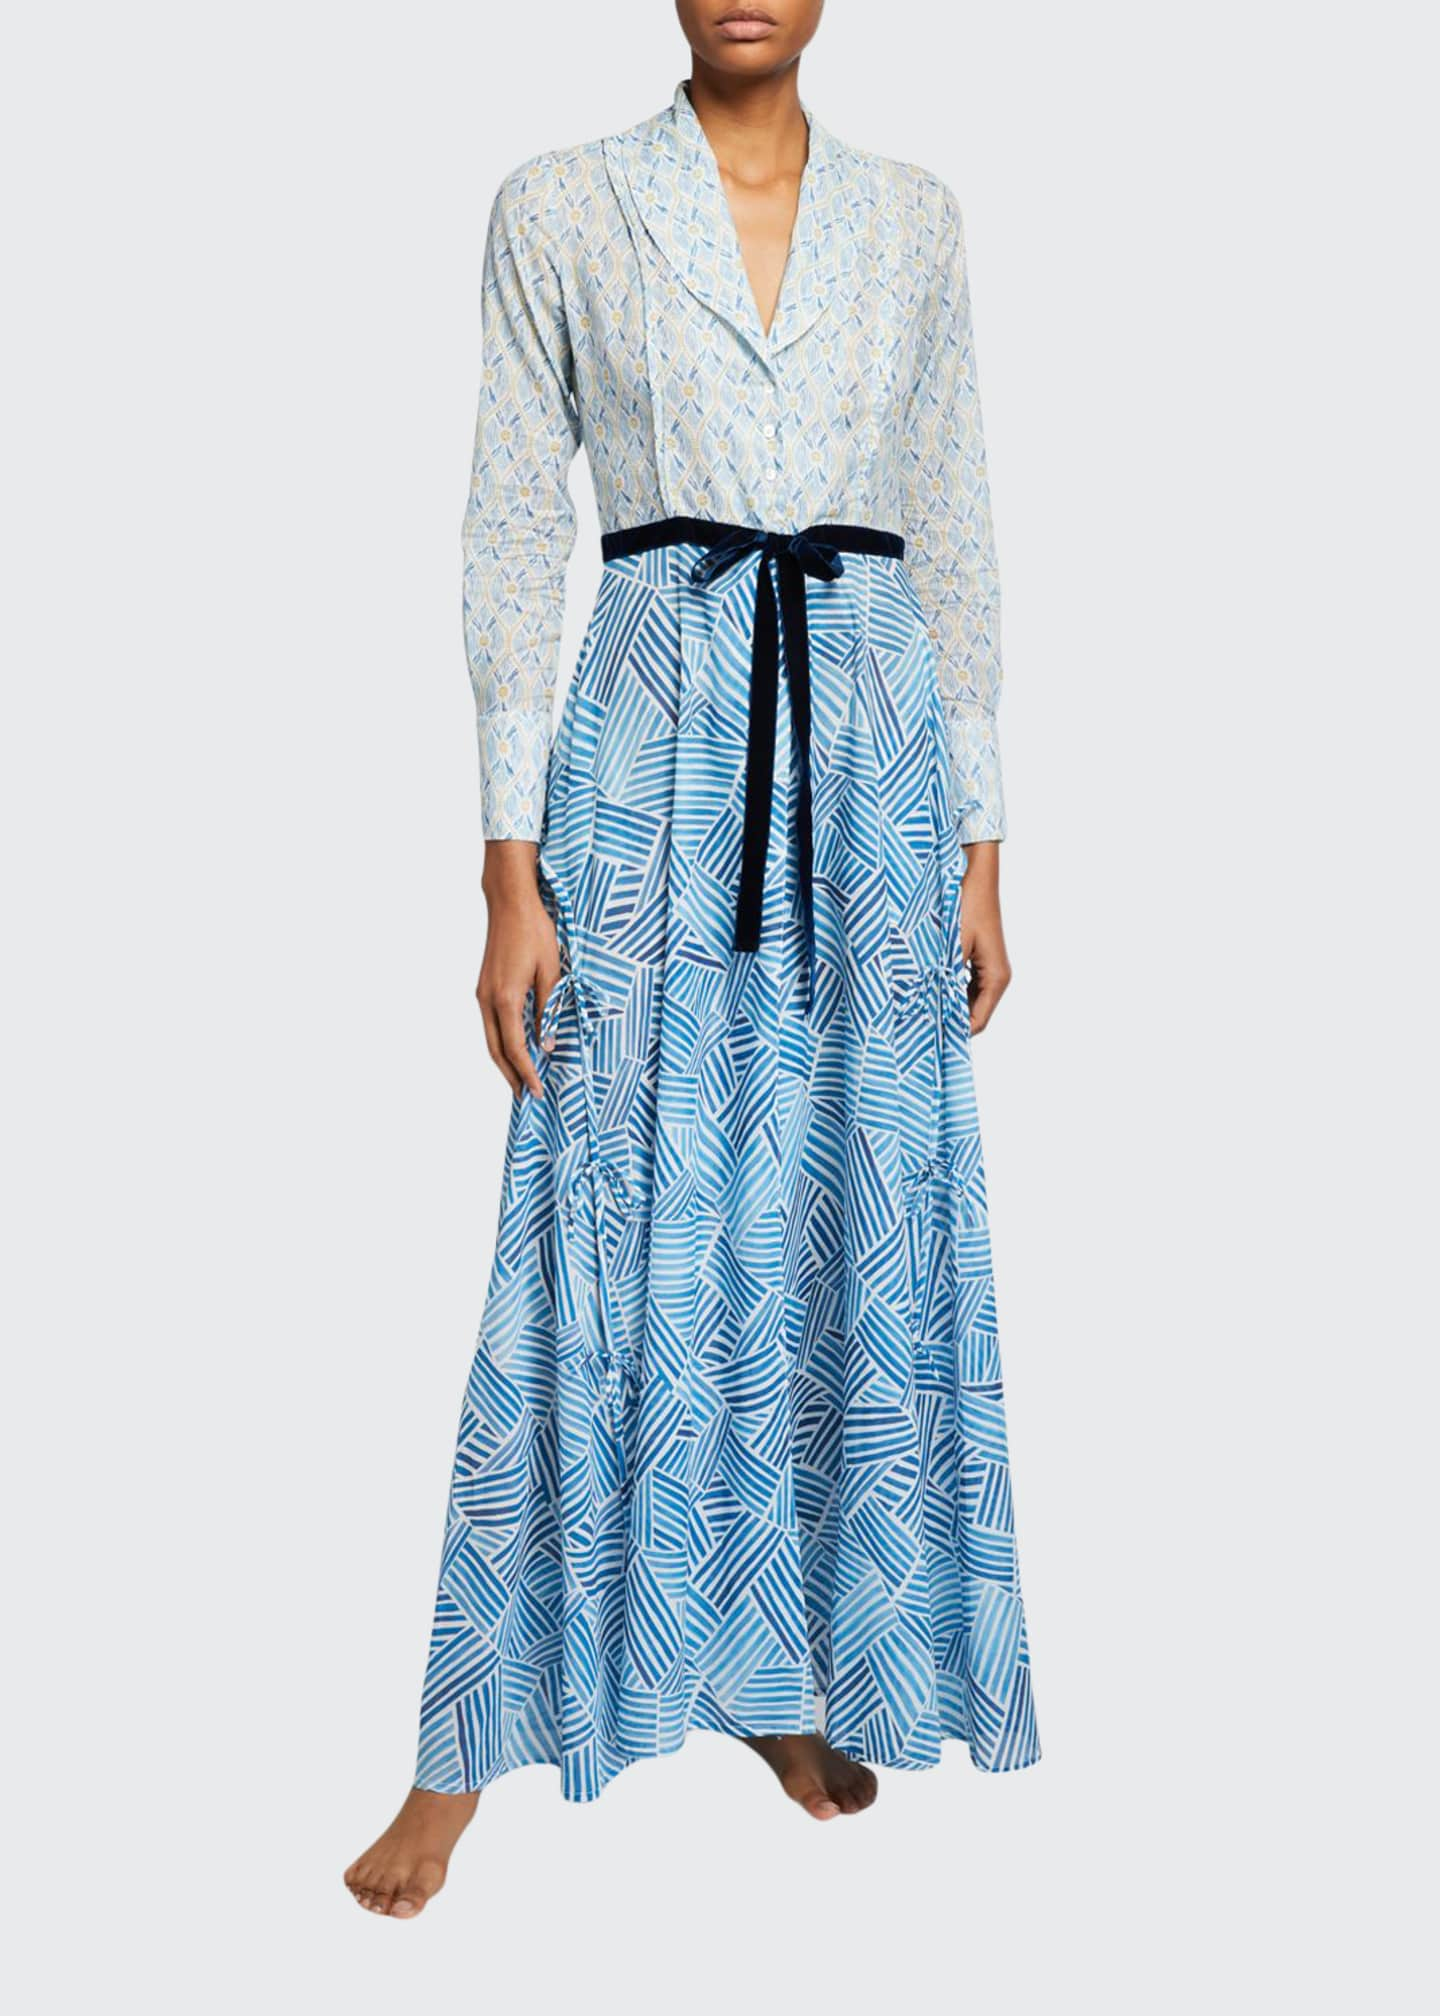 La Costa Del Algodon Hester Graphic-Pattern Long Robe